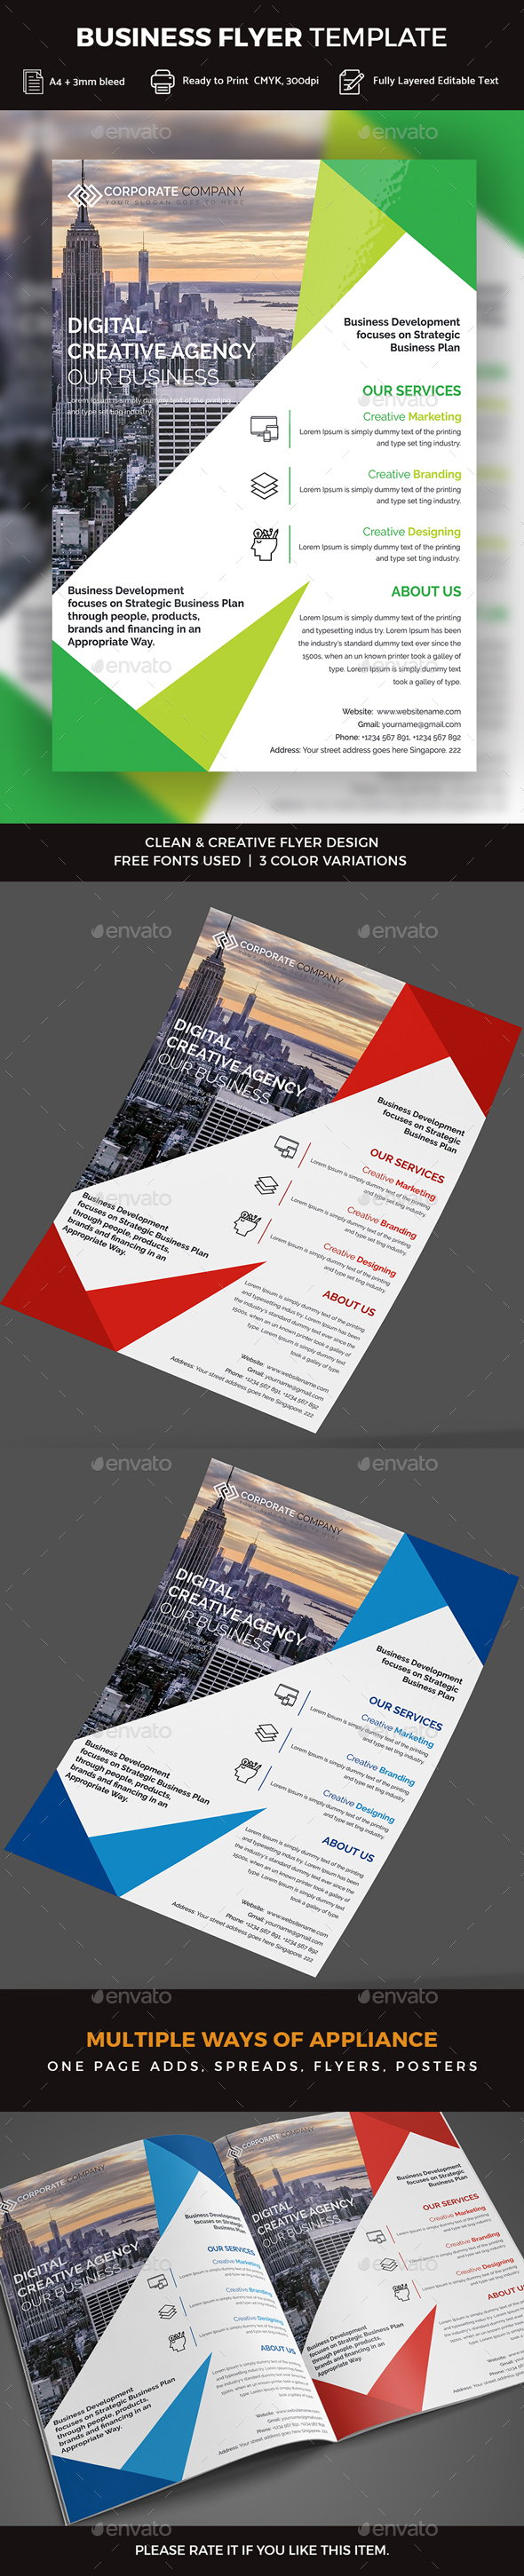 Business Flyer - Print Templates